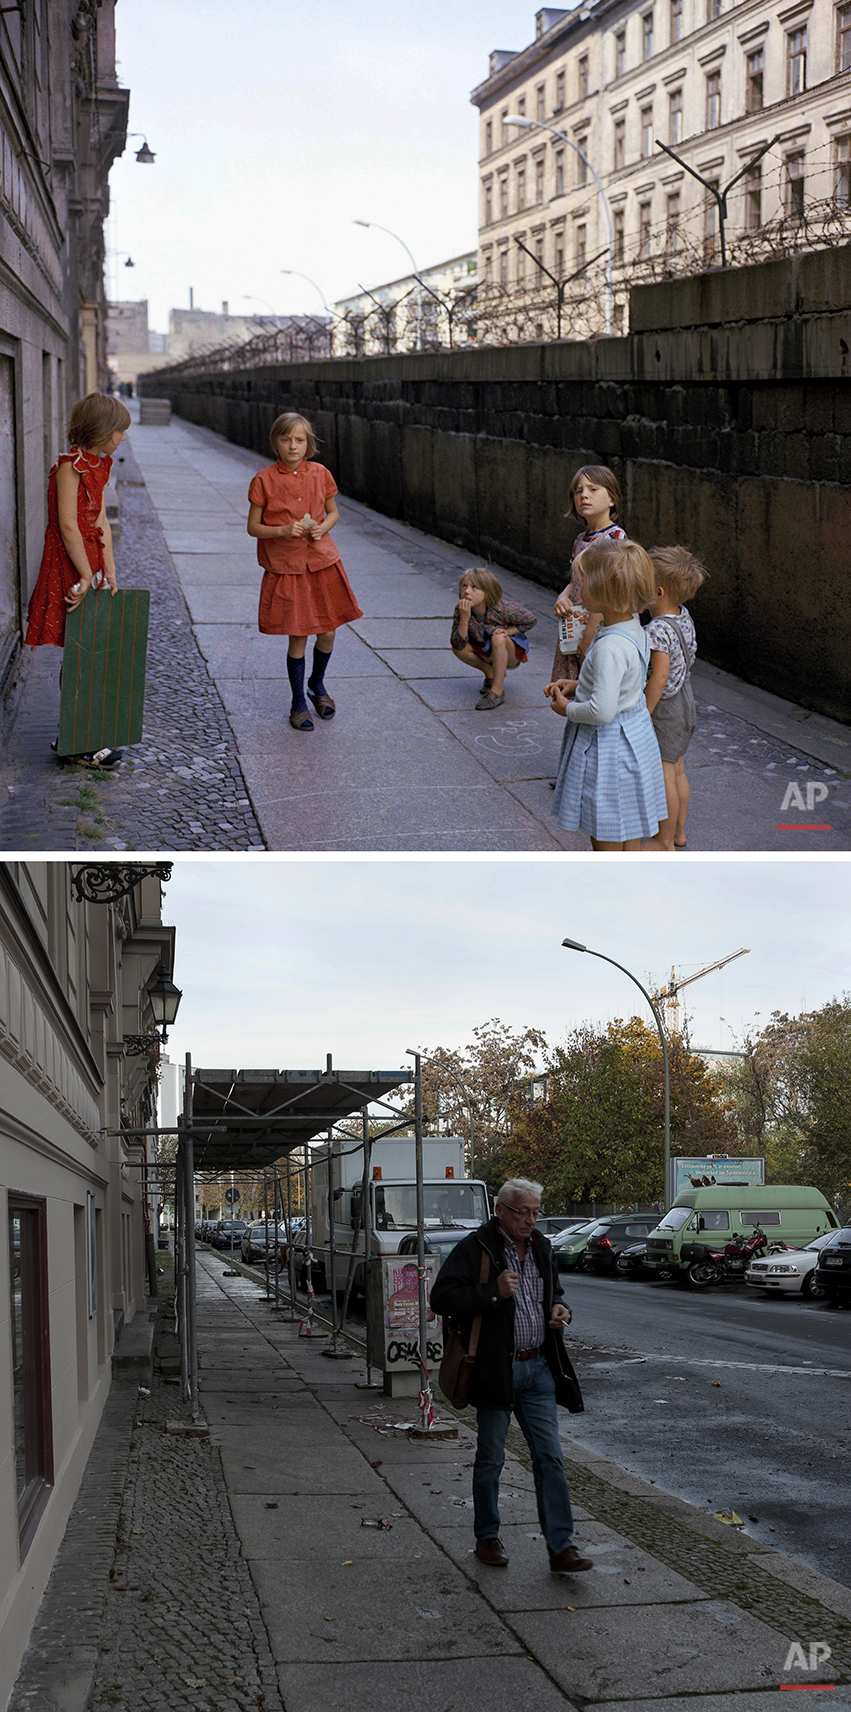 The combo shows children playing at the Berlin Wall at Sebastianstrasse near Heinrich-Heine-Strasse in 1968 and a man walking over the once divided Sebastianstrasse on Nov. 3, 2014 - 25 years after the fall of the wall.  (AP Photo/Markus Schreiber)